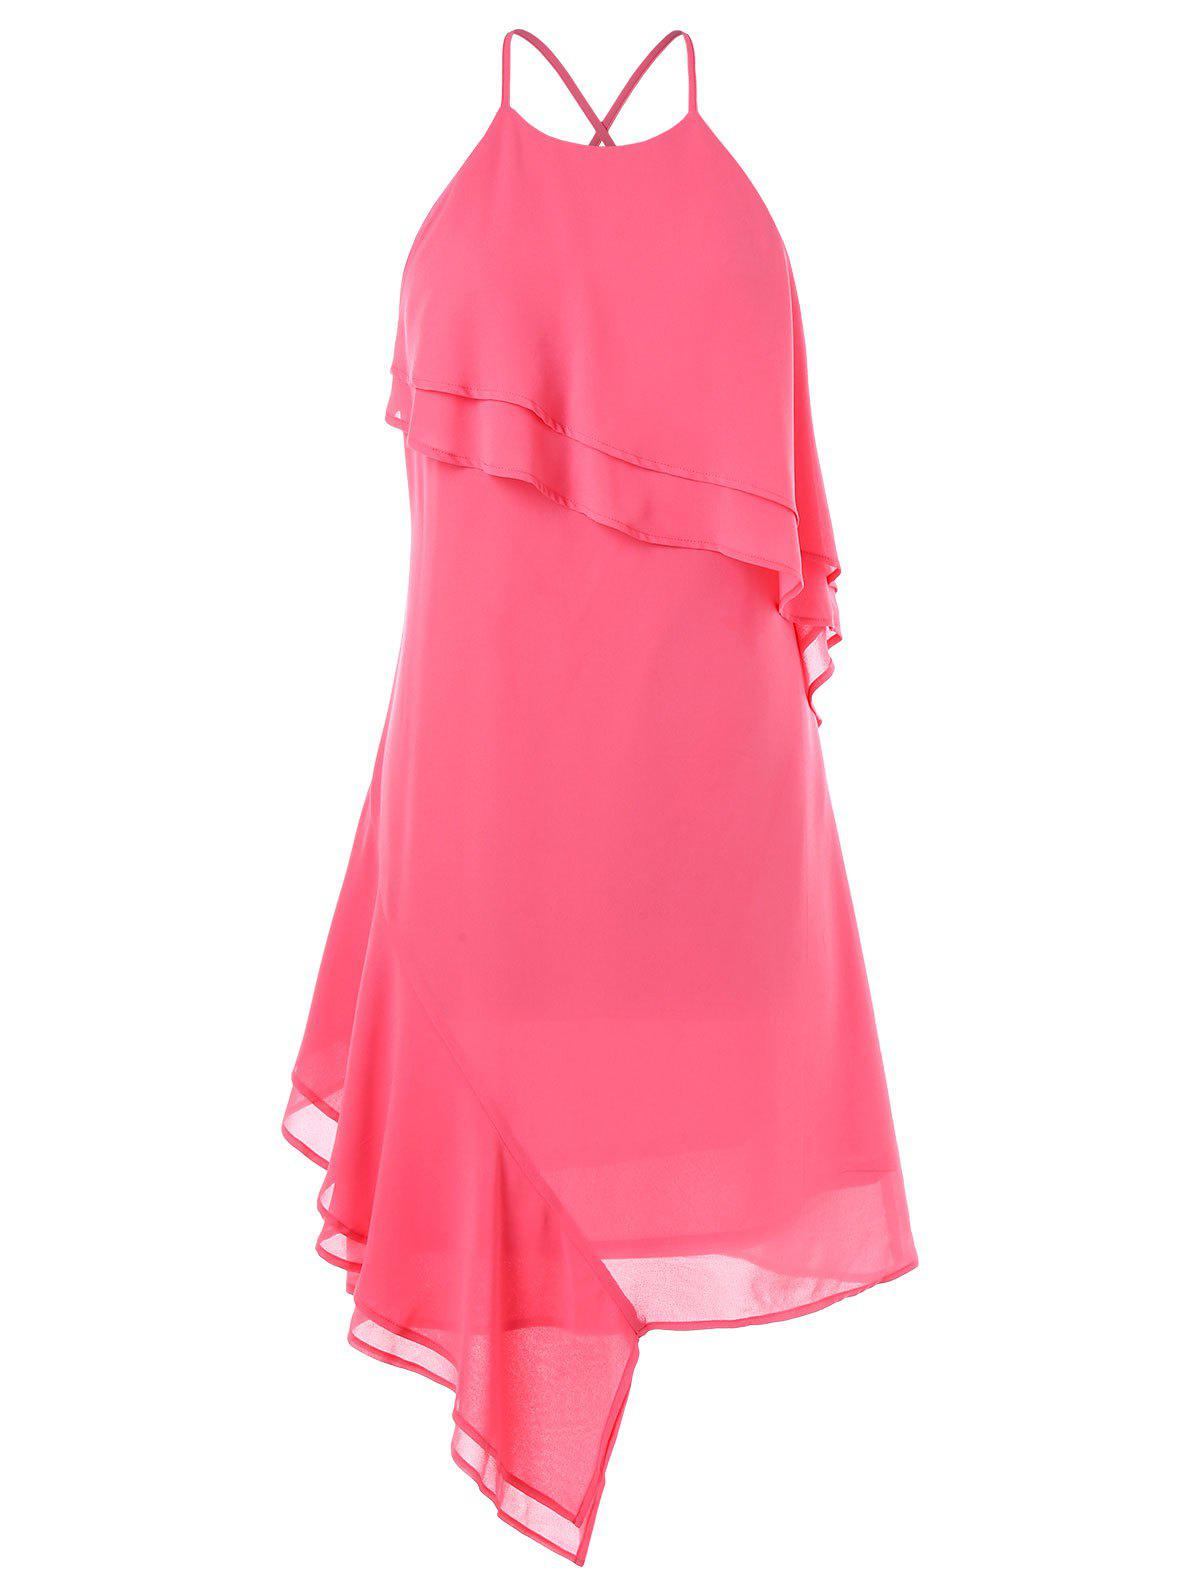 Asymmetrical Chiffon Slip Dress - DEEP PINK XL